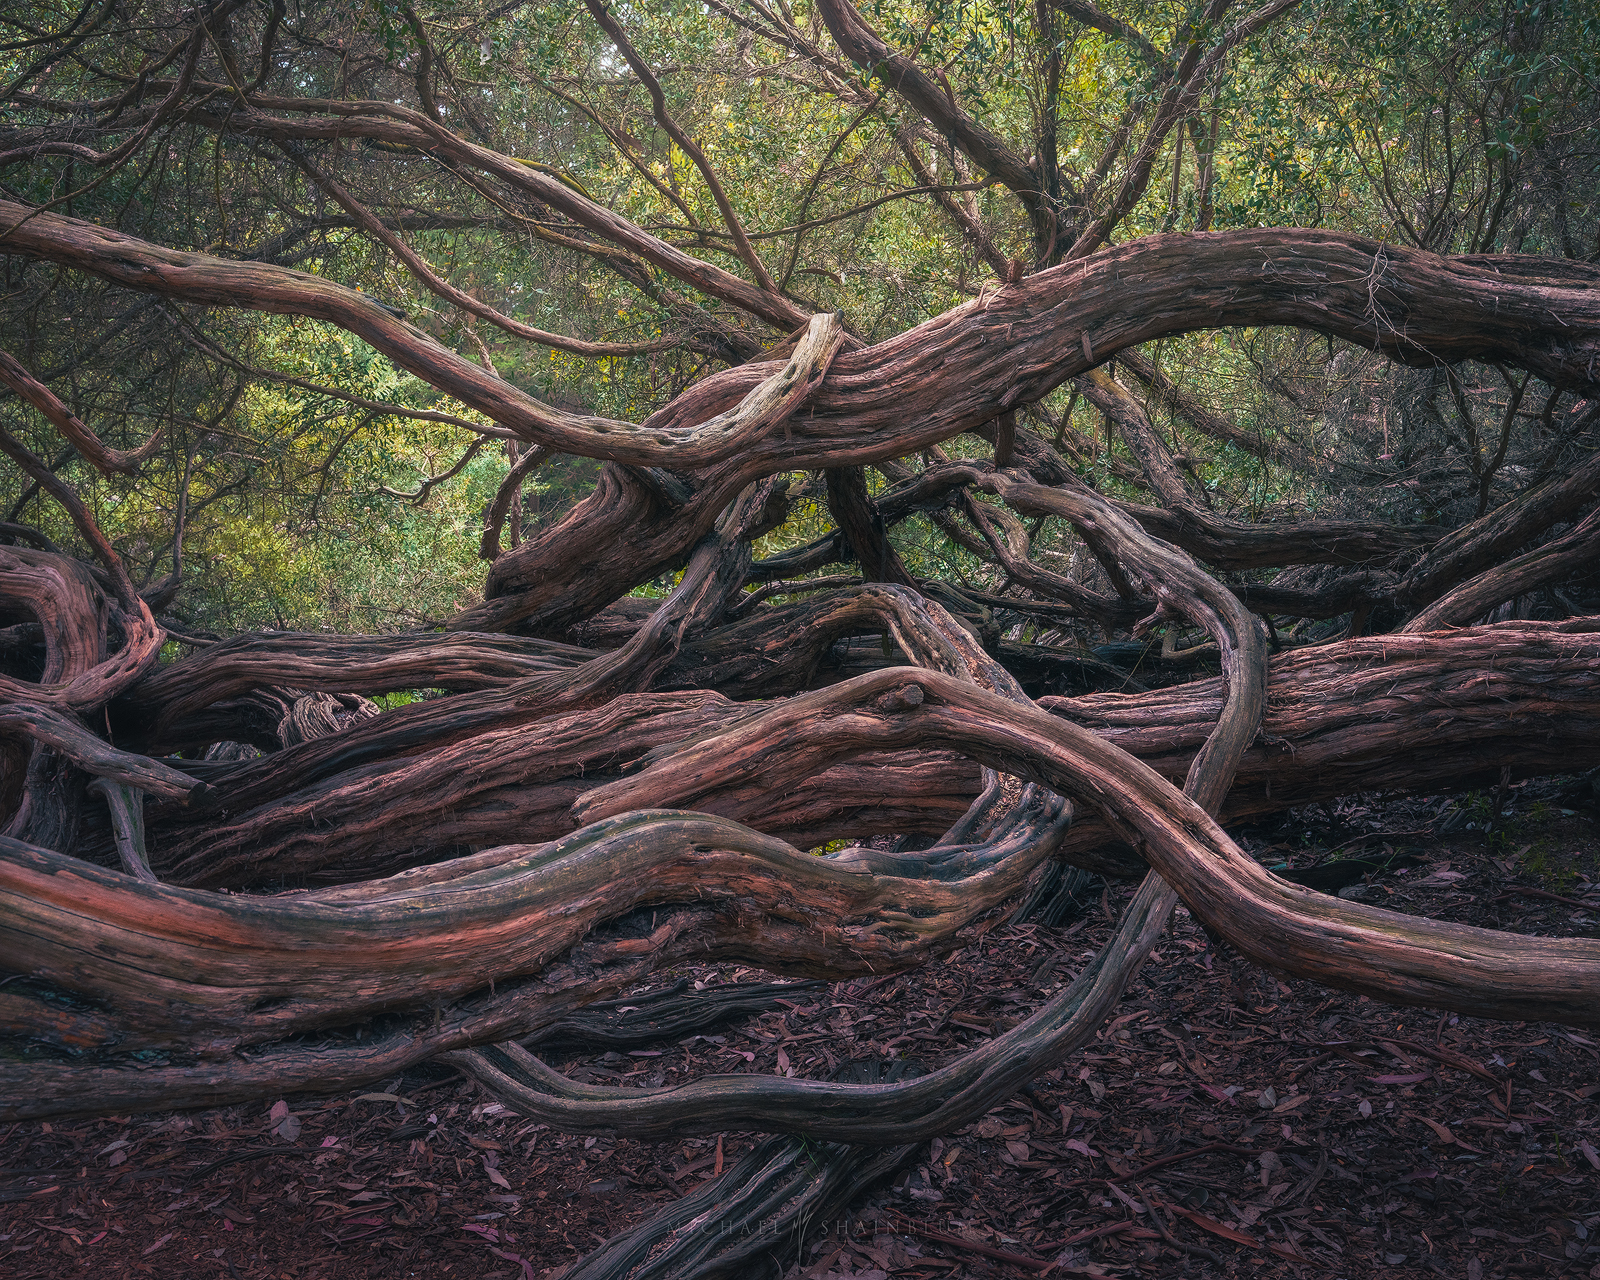 golden gate park, san francisco landscape photography.